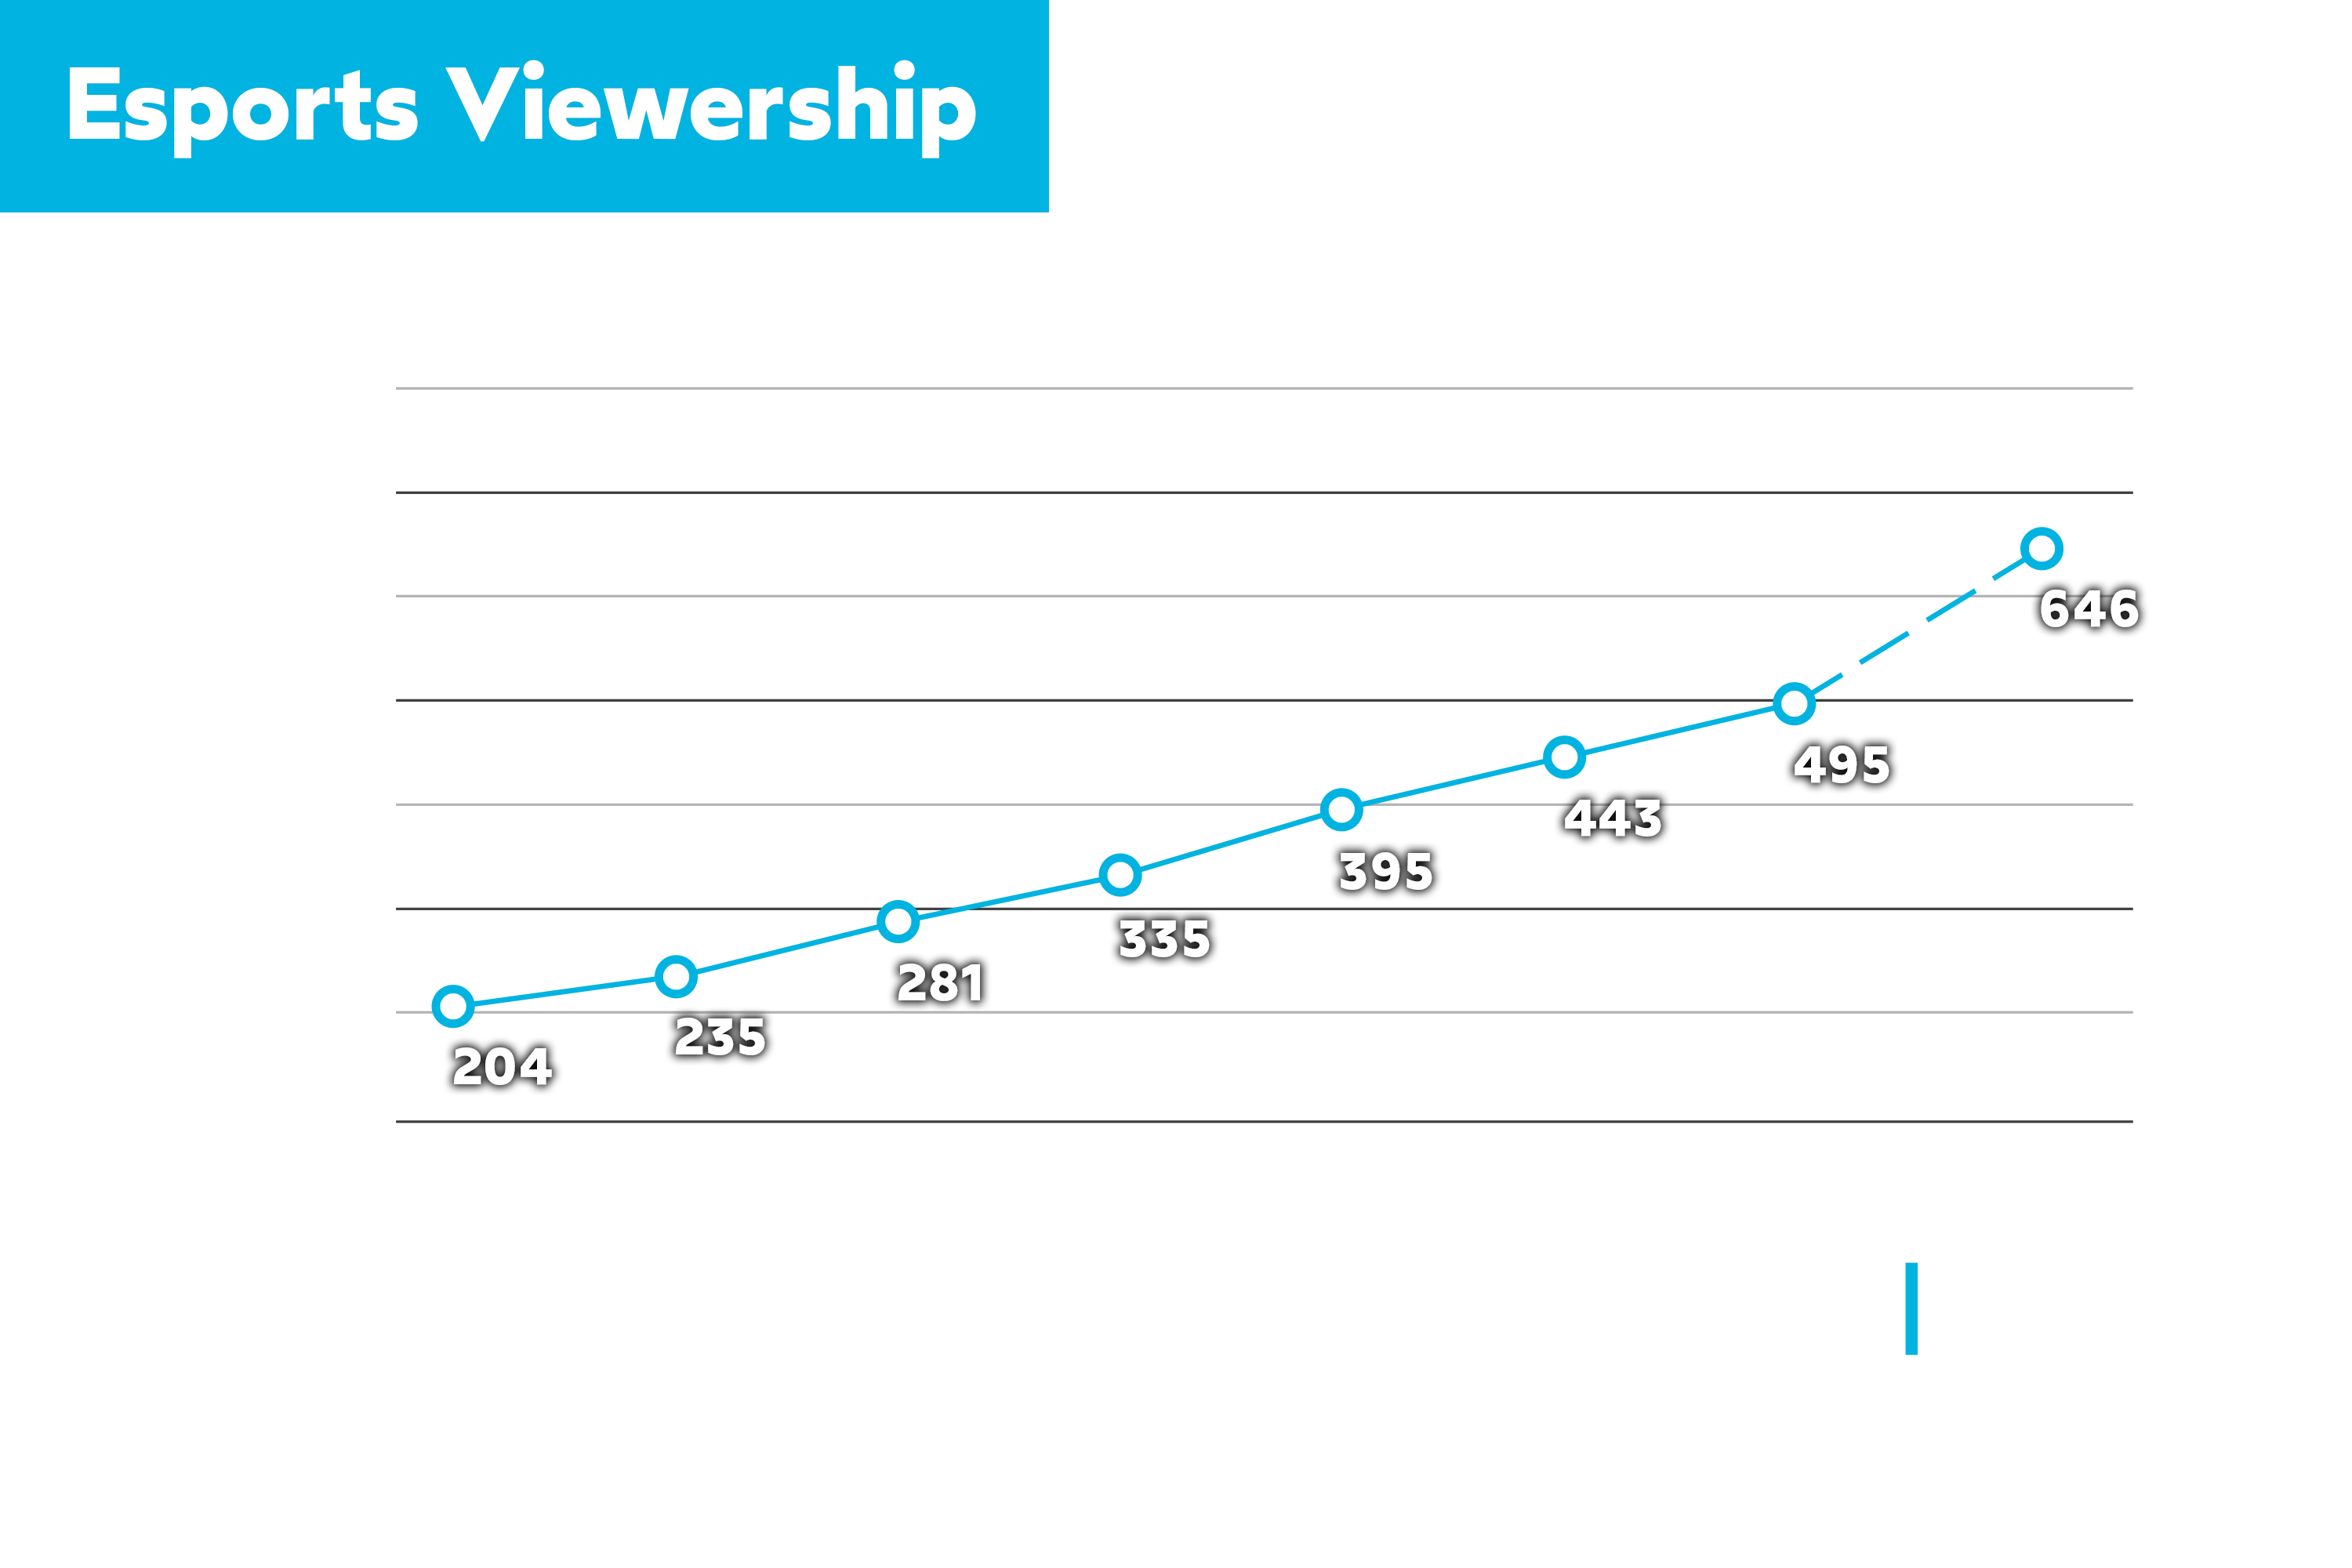 Esports Viewership over Time